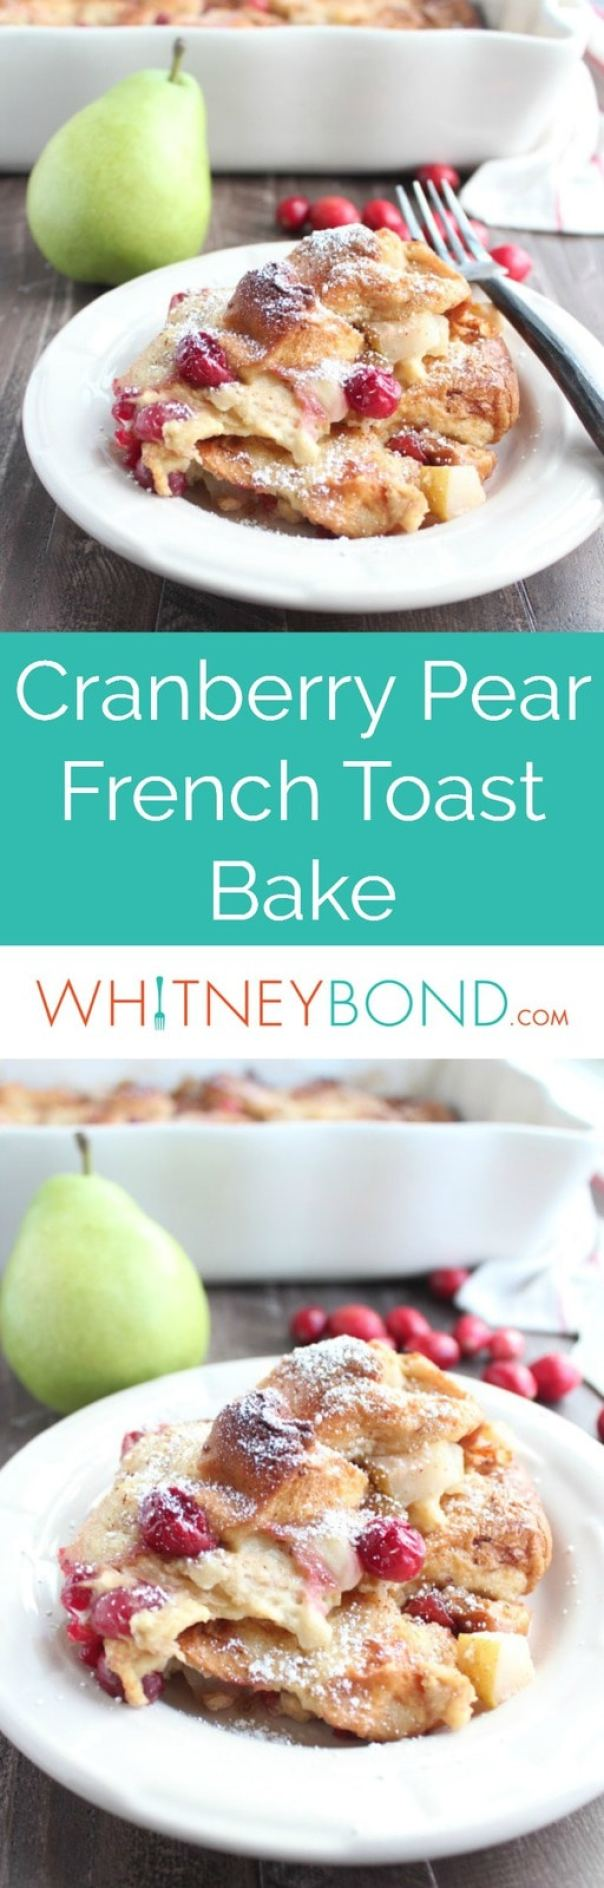 Fresh cranberries and pears add a tart, sweet burst of flavor to this deliciously simple french toast bake recipe, that's perfect for breakfast or brunch!